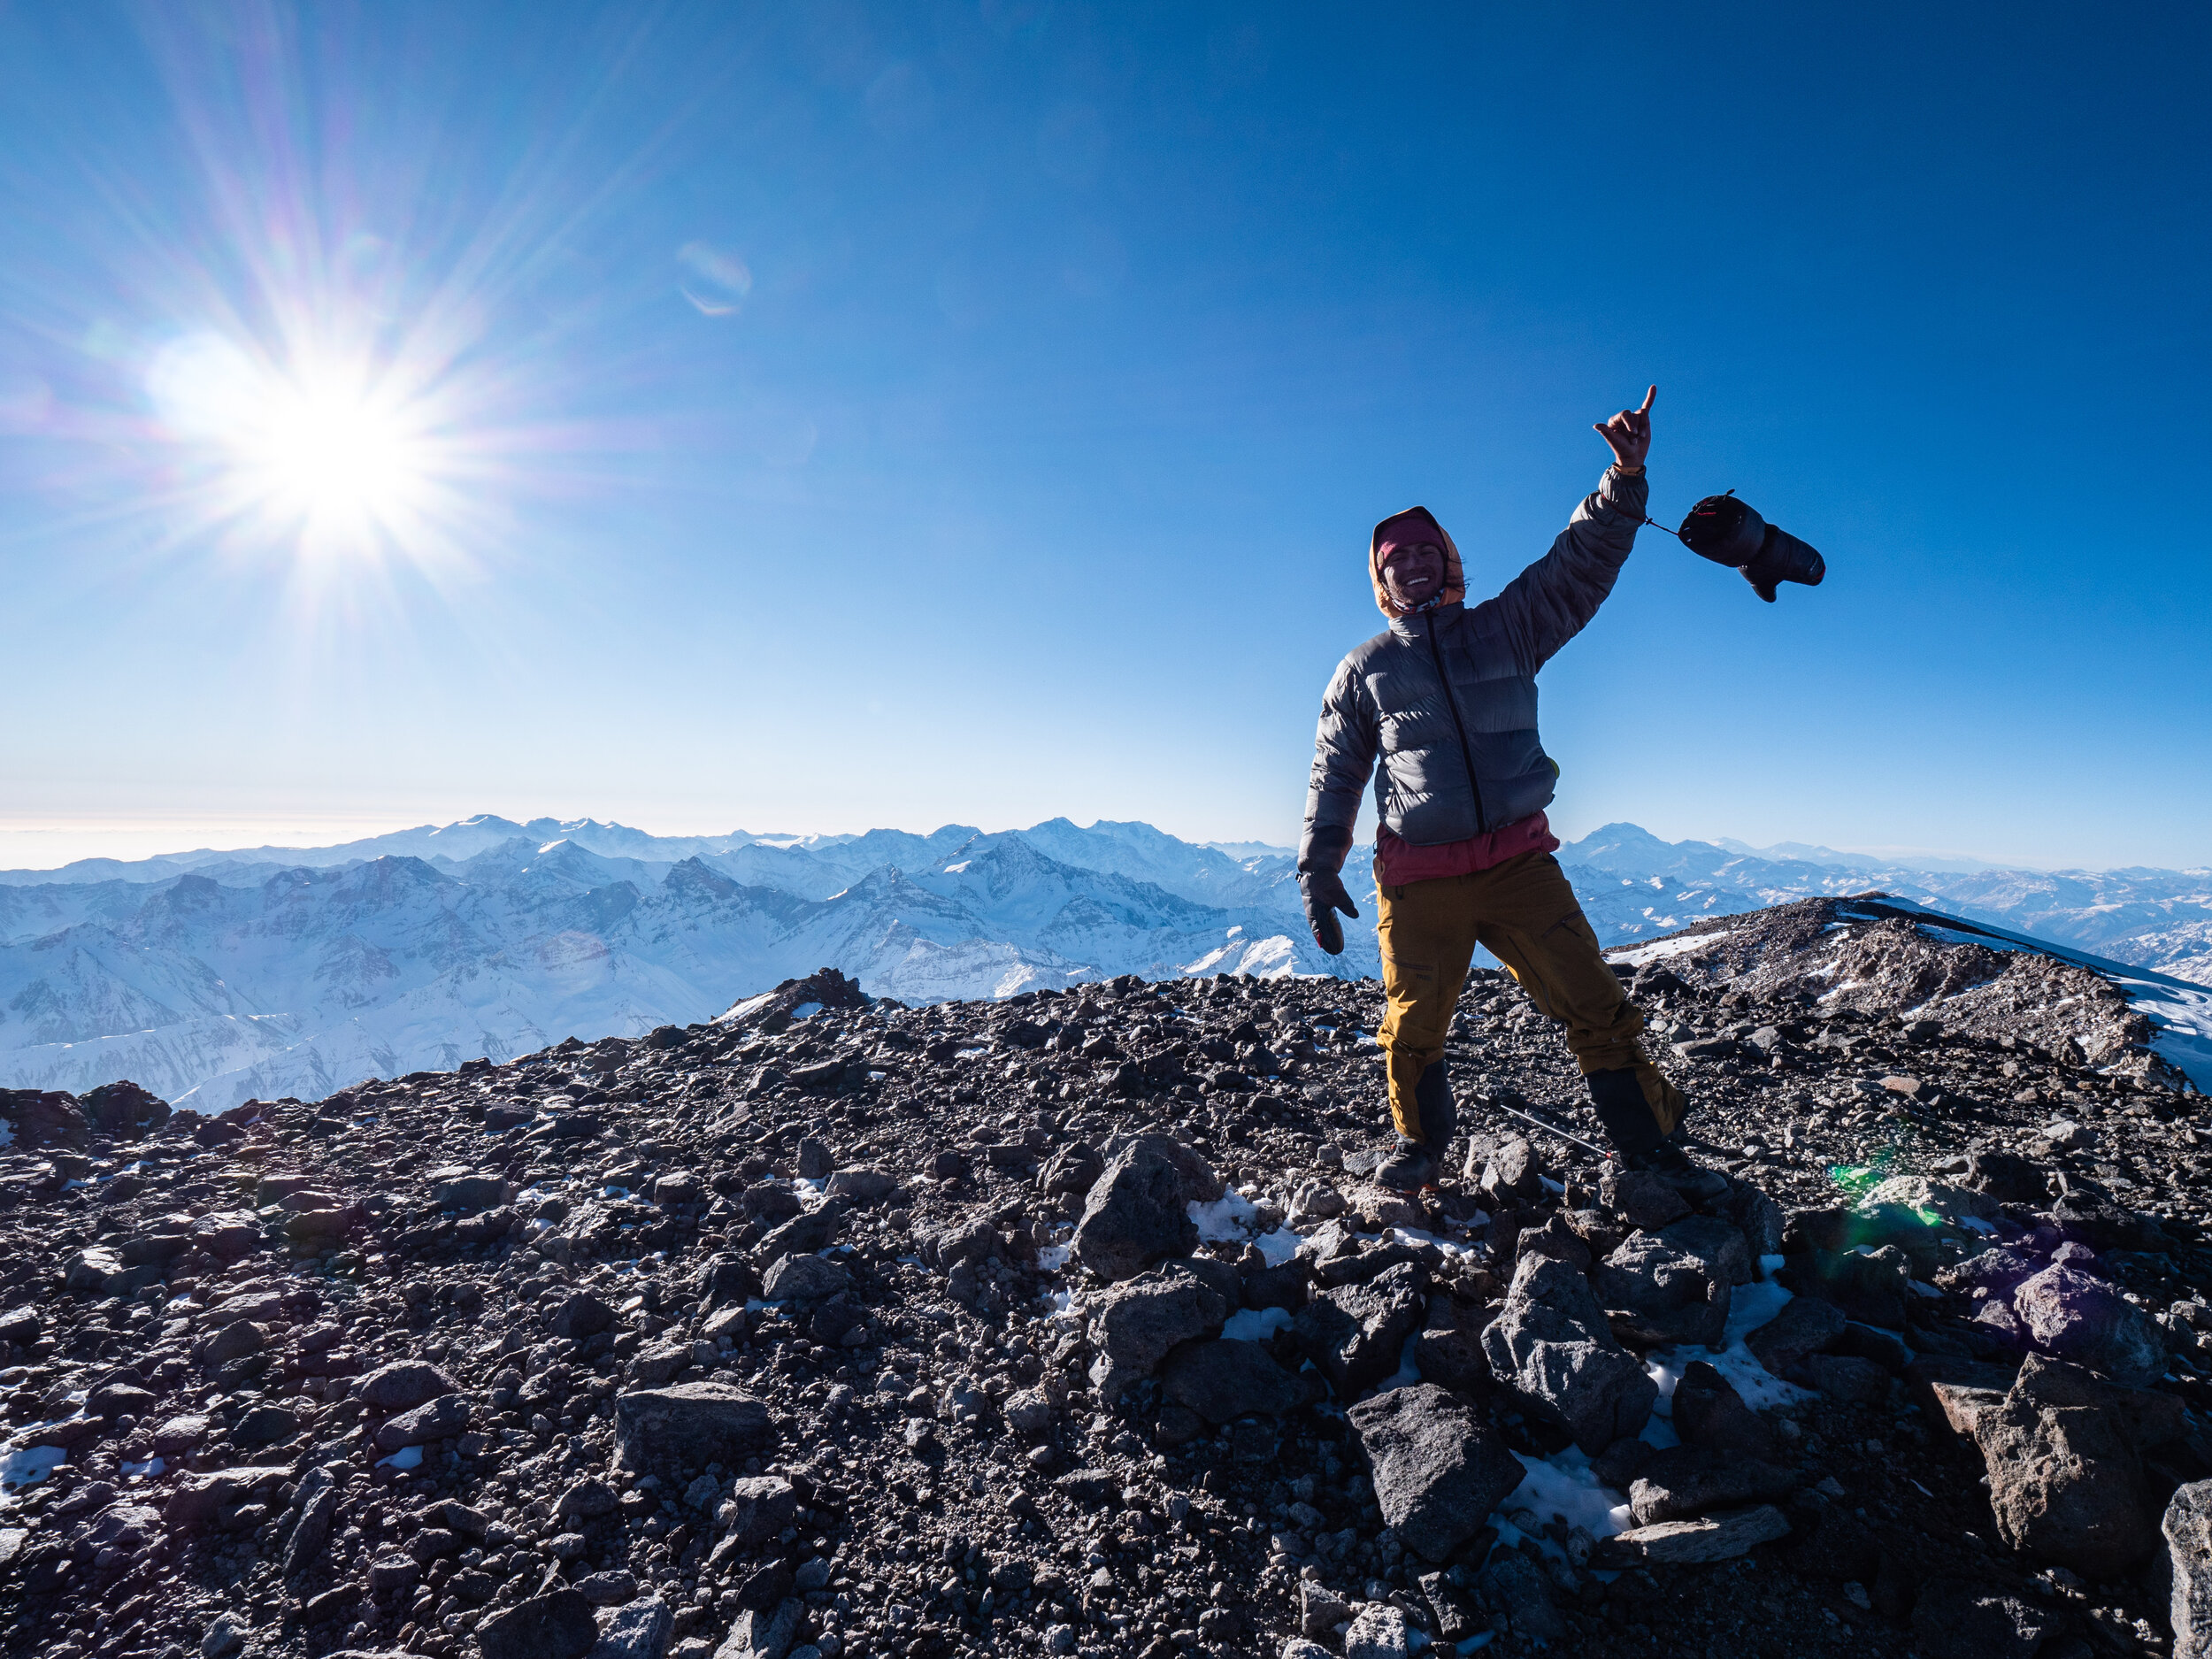 Rafael Pease at 6,570m (21,555ft) on the summit of Volcan Tupungato with views of the entire central Andes.